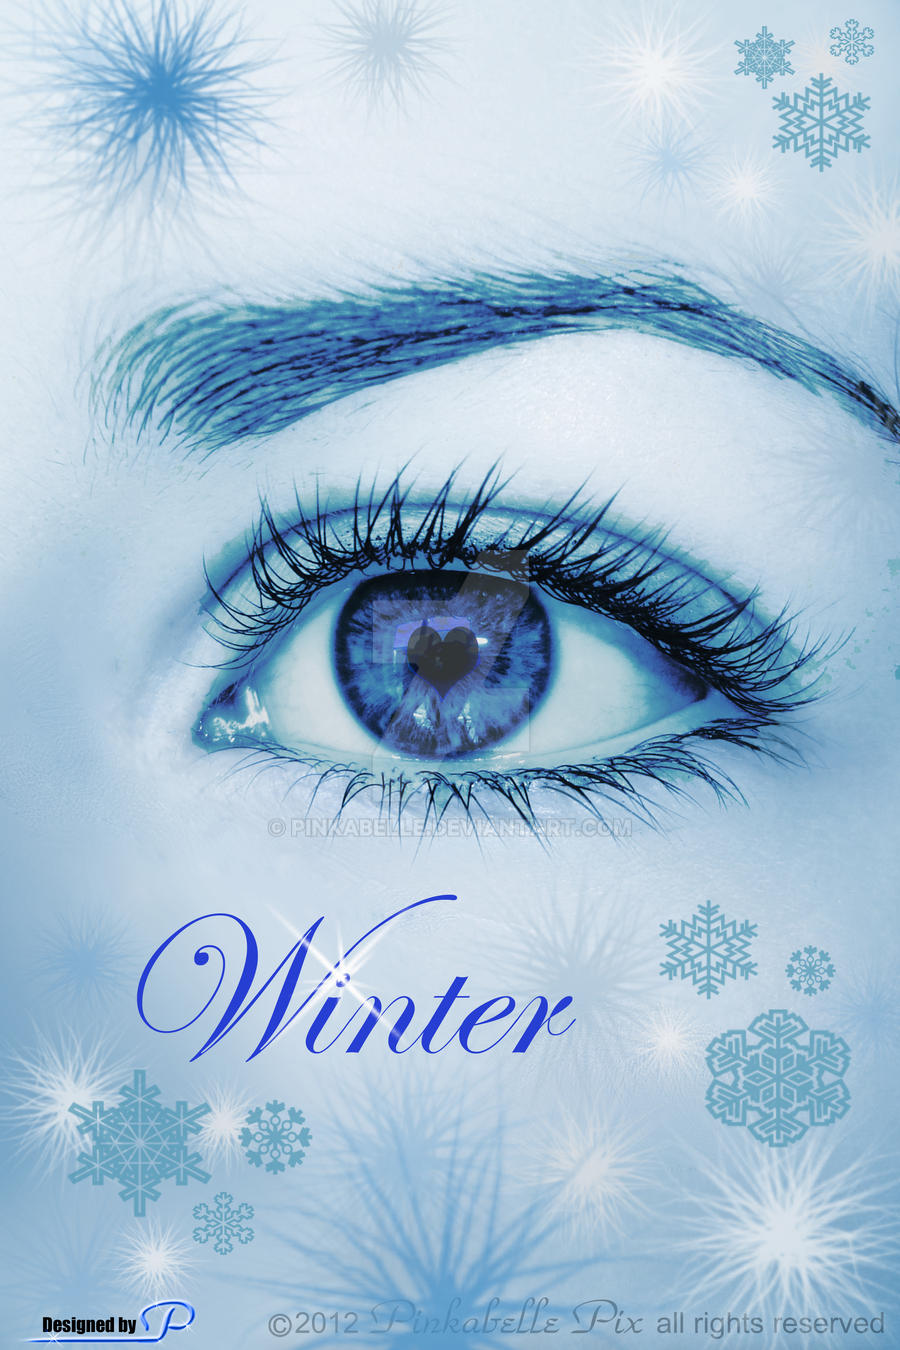 Heart of Winter by Pinkabelle